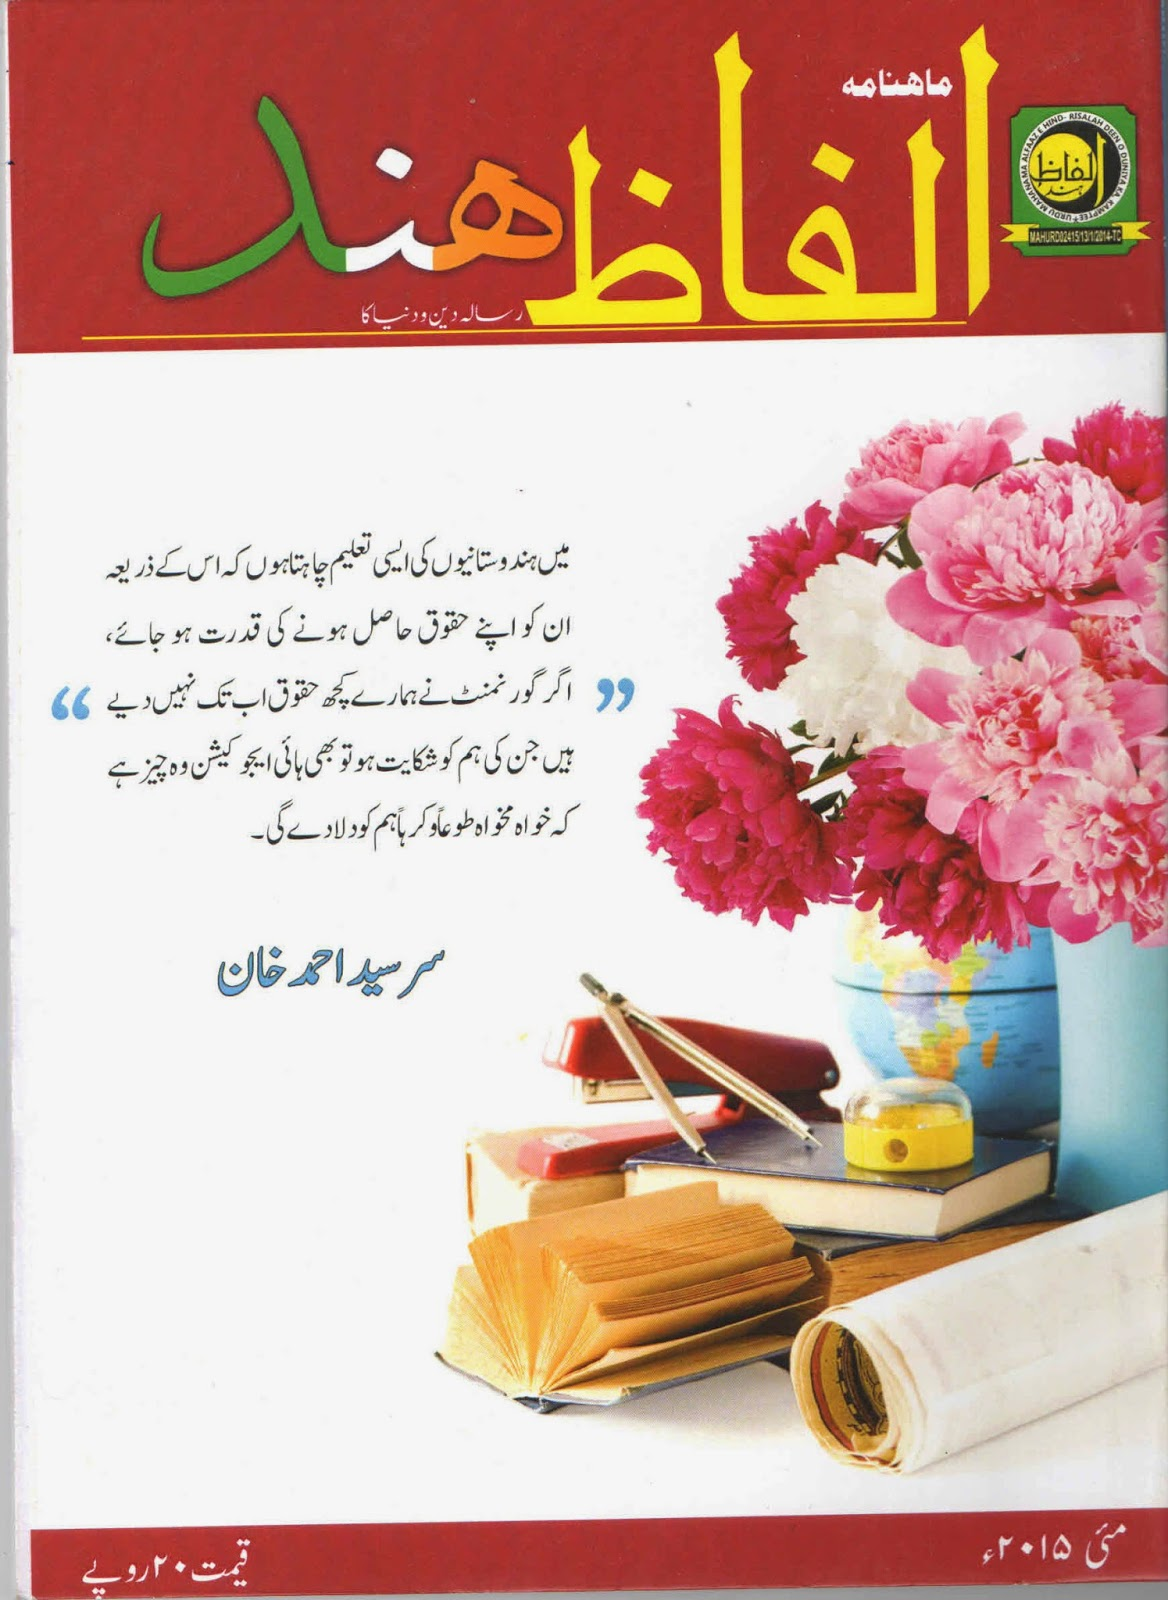 urdu essays for children 24-1-2014 advertisements: browse violent strikes of the 19th century and read essay on allama iqbal in urdu language for kids essay on allama iqbal in urdu language for kids where you can find the essay in urdu language for kids essay on allama iqbal in urdu november 8, 2017 download and.